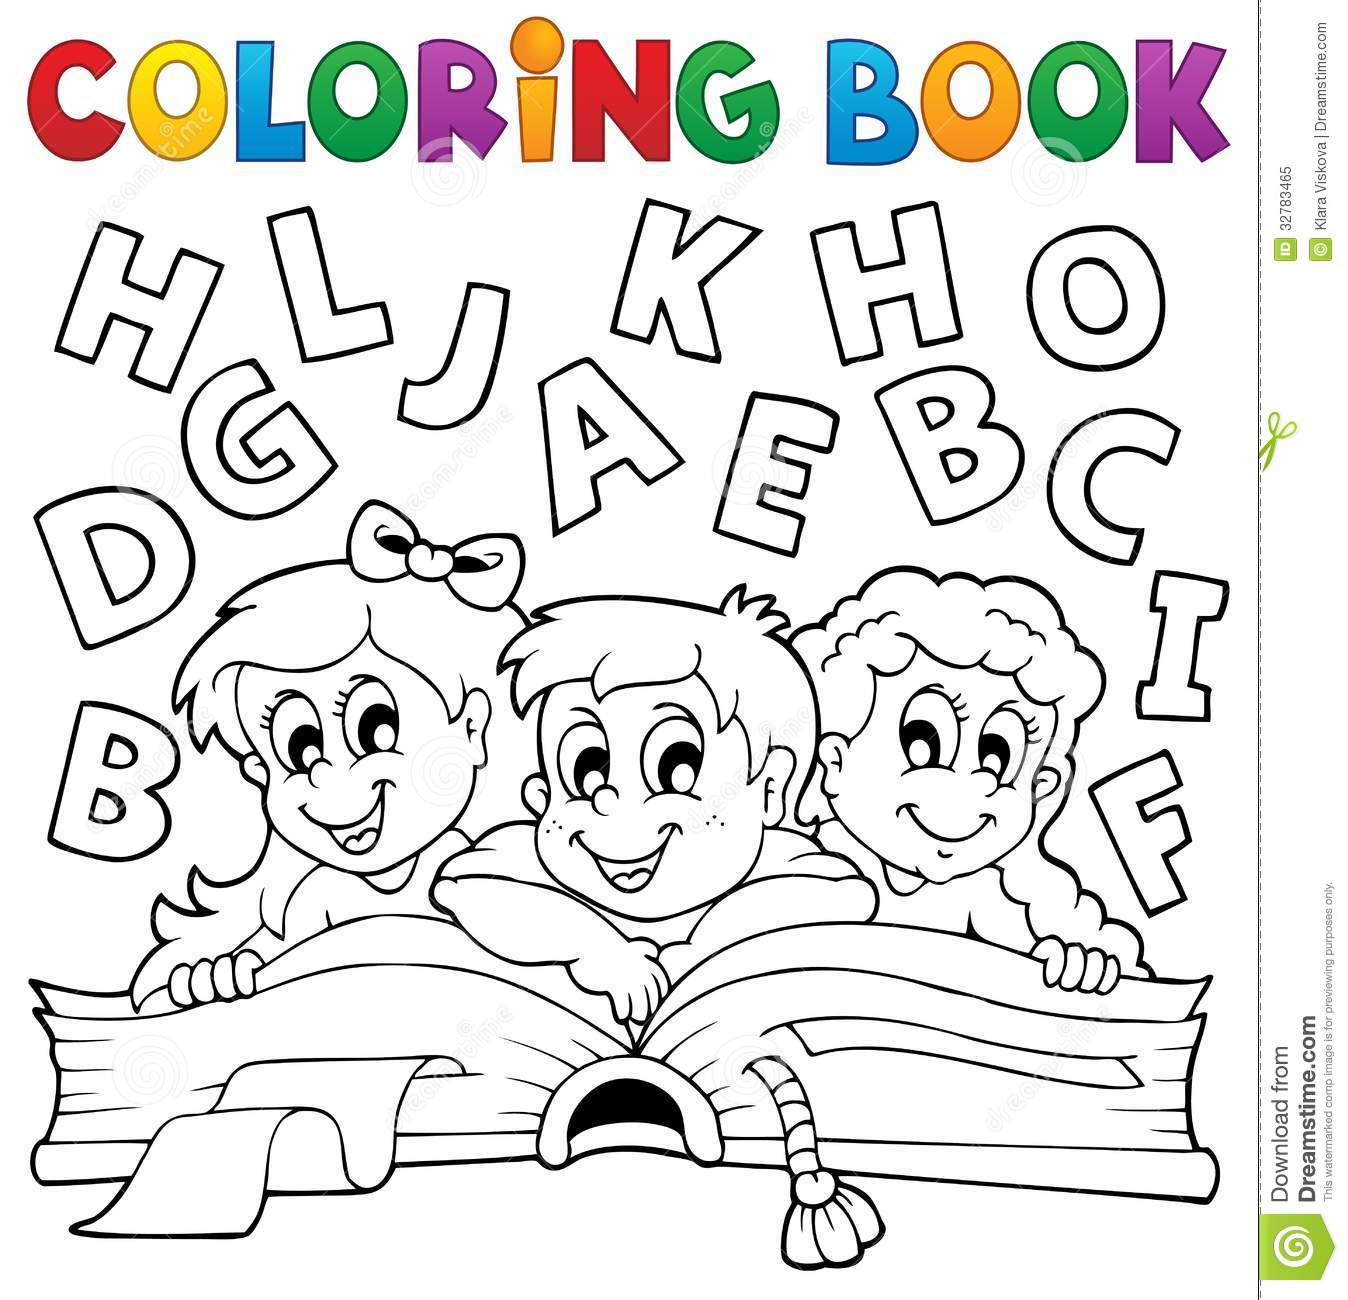 coloring book kids theme 5 royalty free stock photo image 32783465